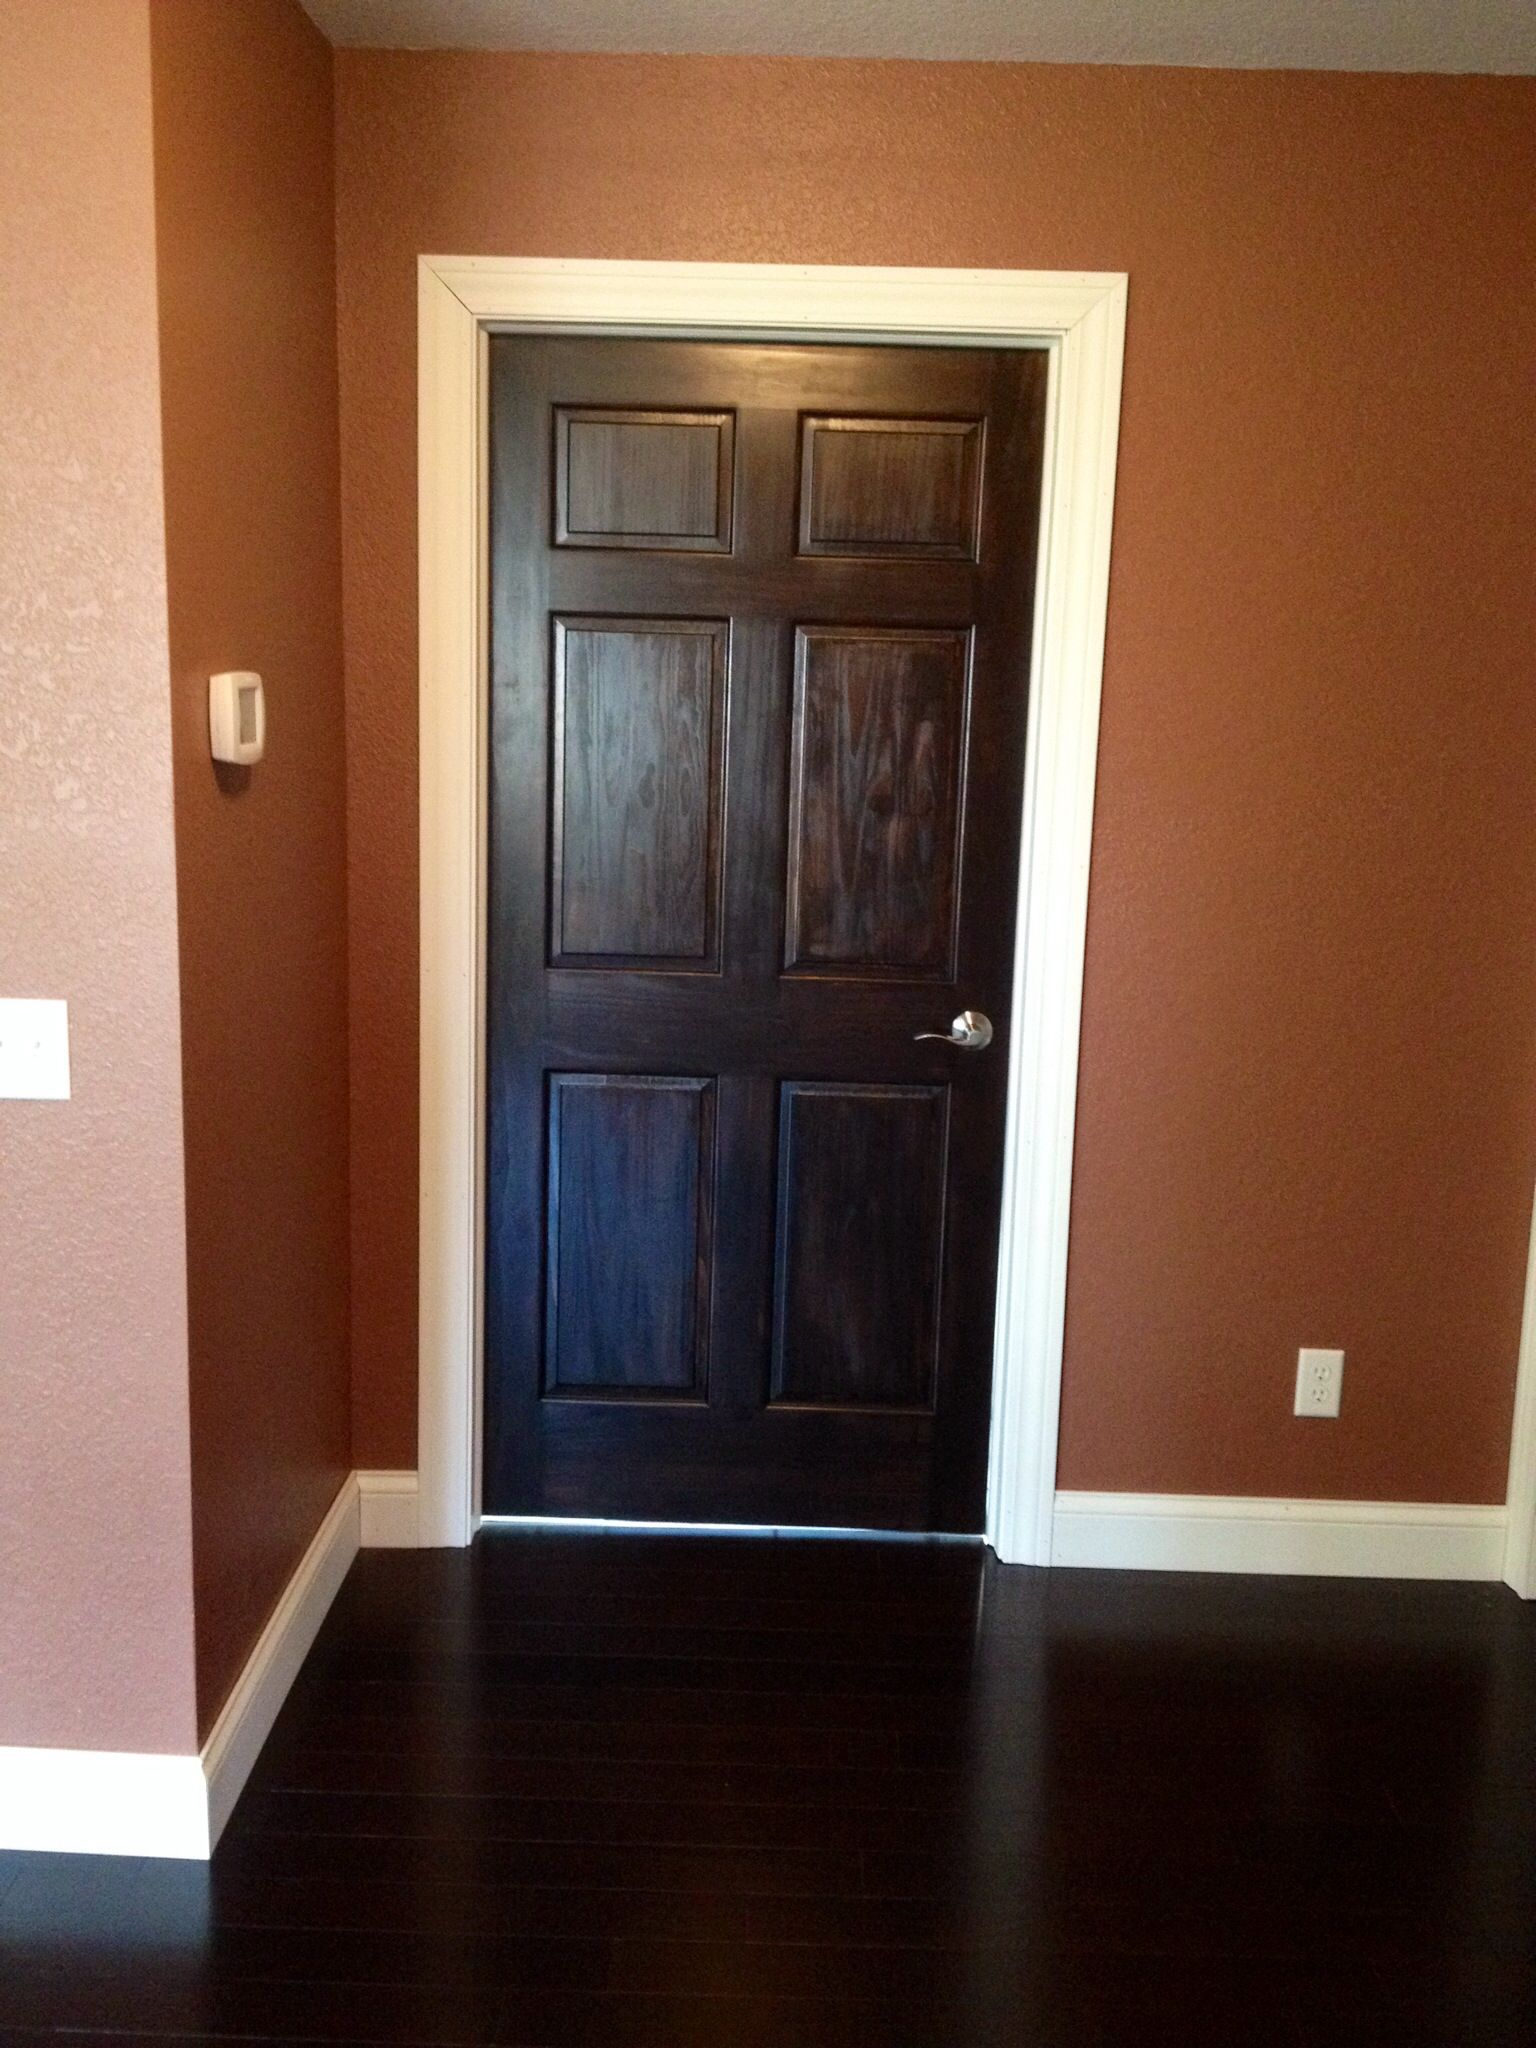 Pin By Jaime Stiriz Rupp On Our Home Projects Stained Doors Door Design Interior Wood Doors Interior